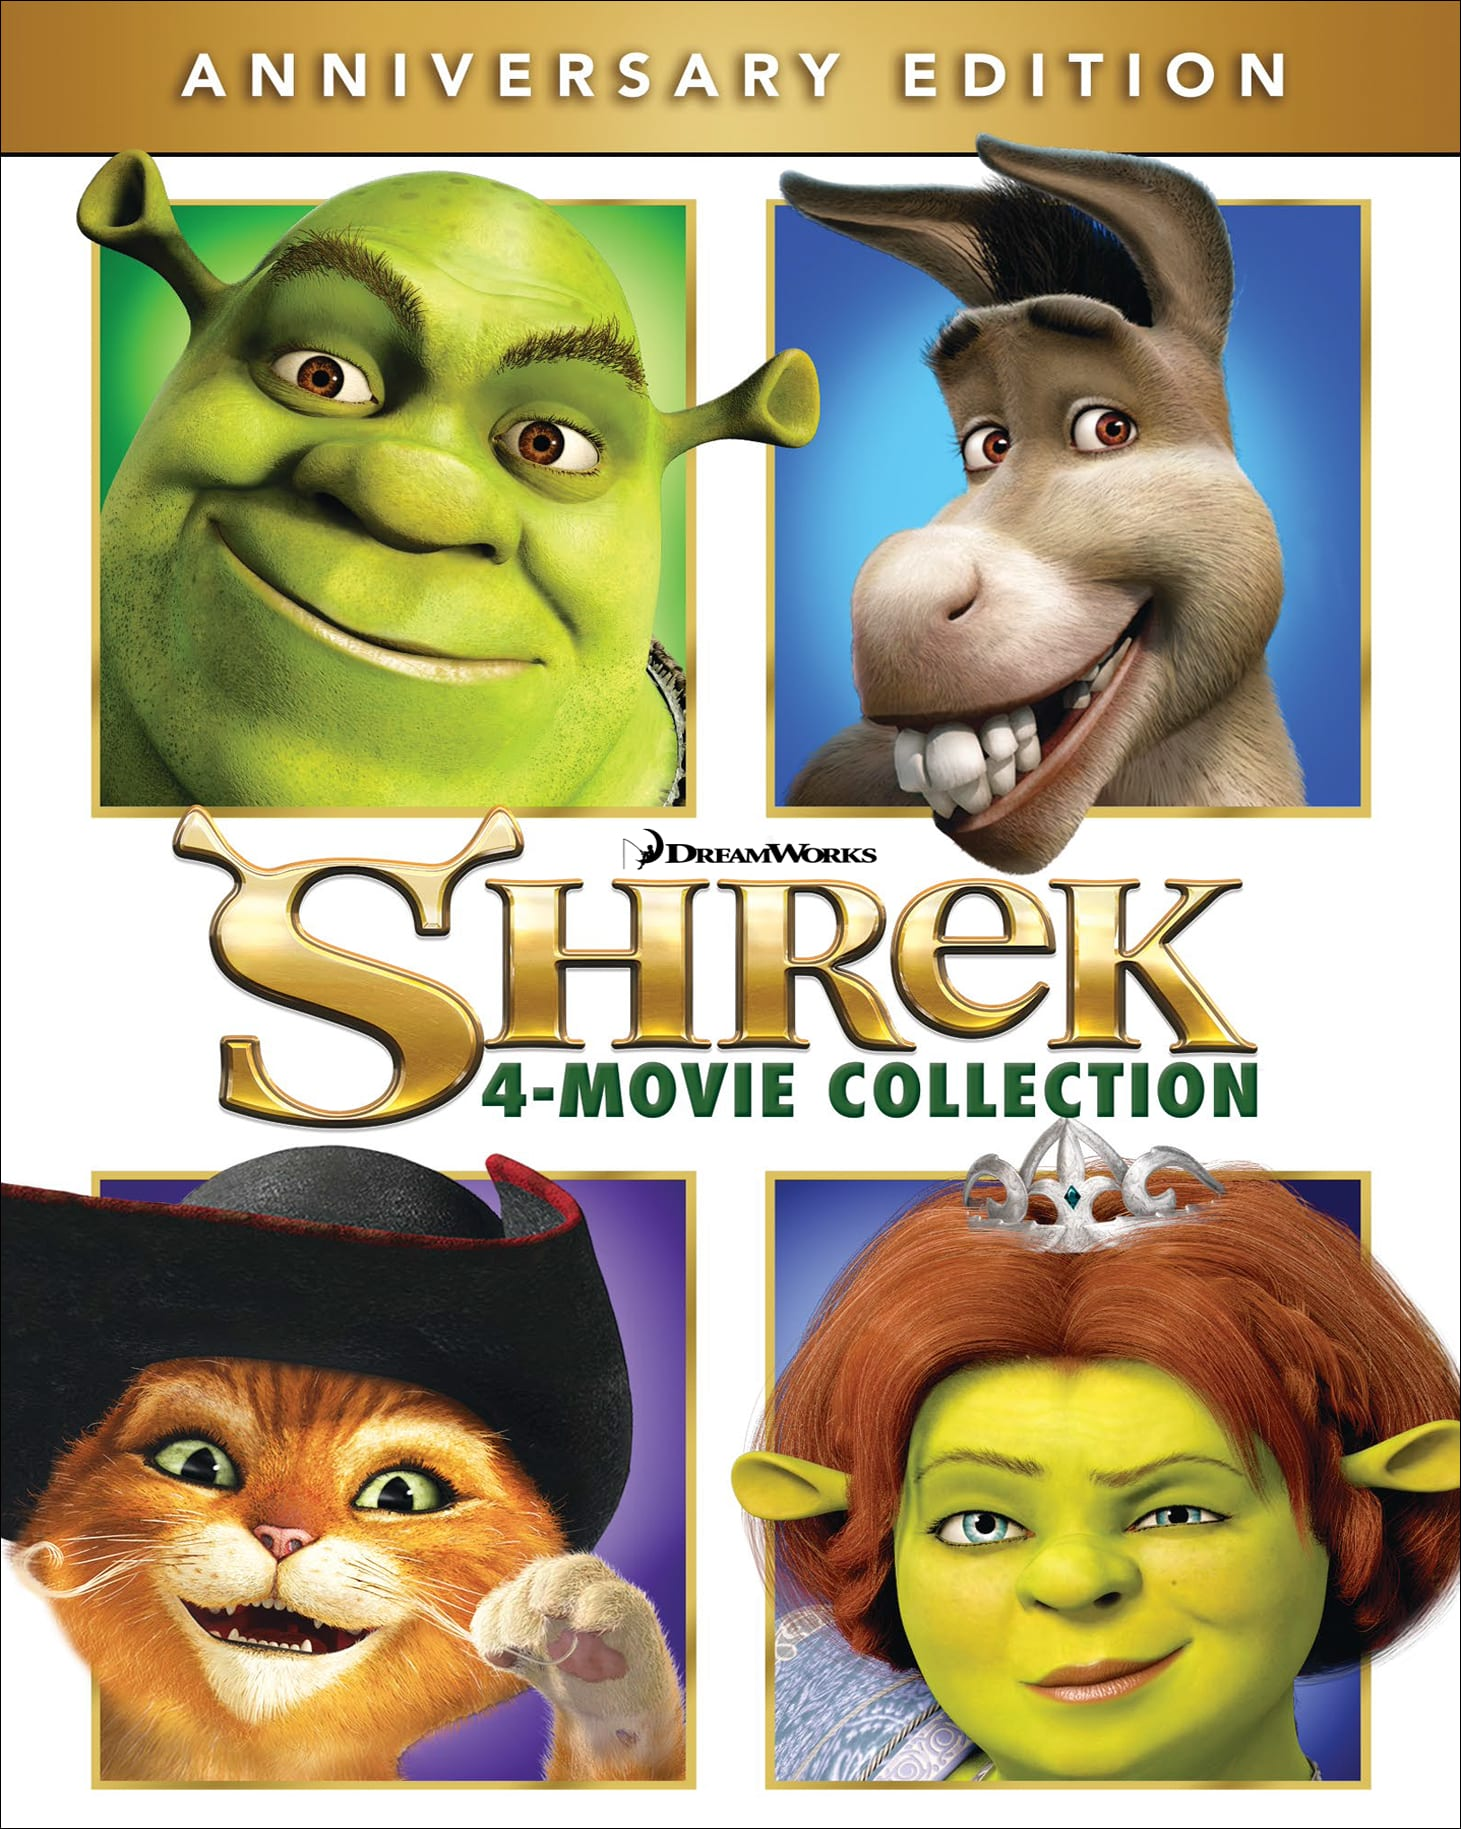 Shrek: The 4-movie Collection (Anniversary Edition) [Blu-ray]